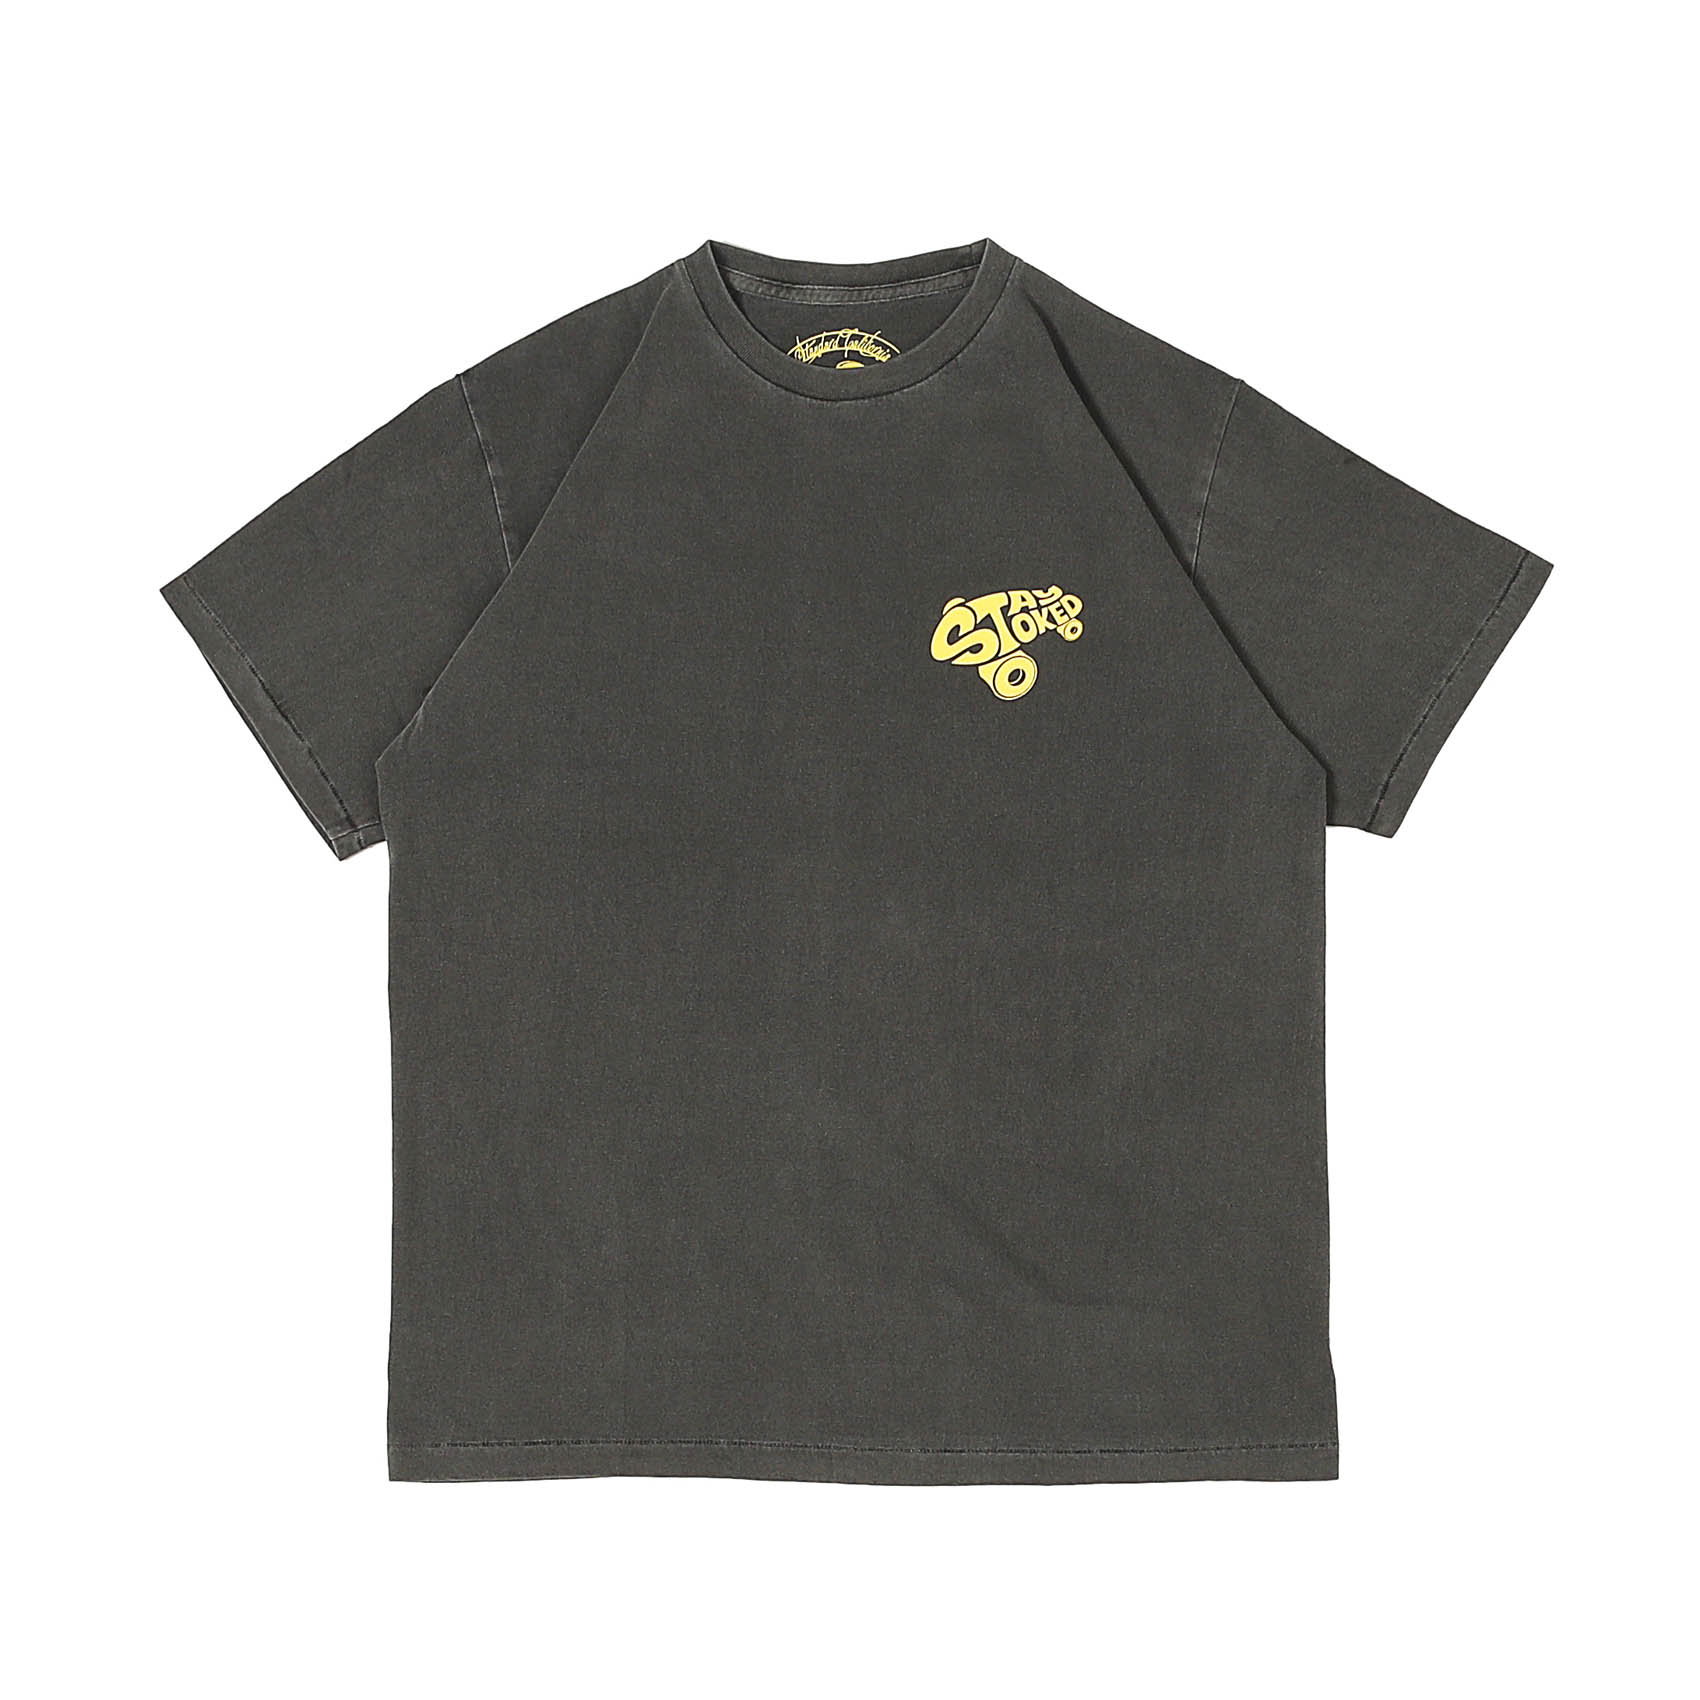 STAY STOKED TEE - BLACK